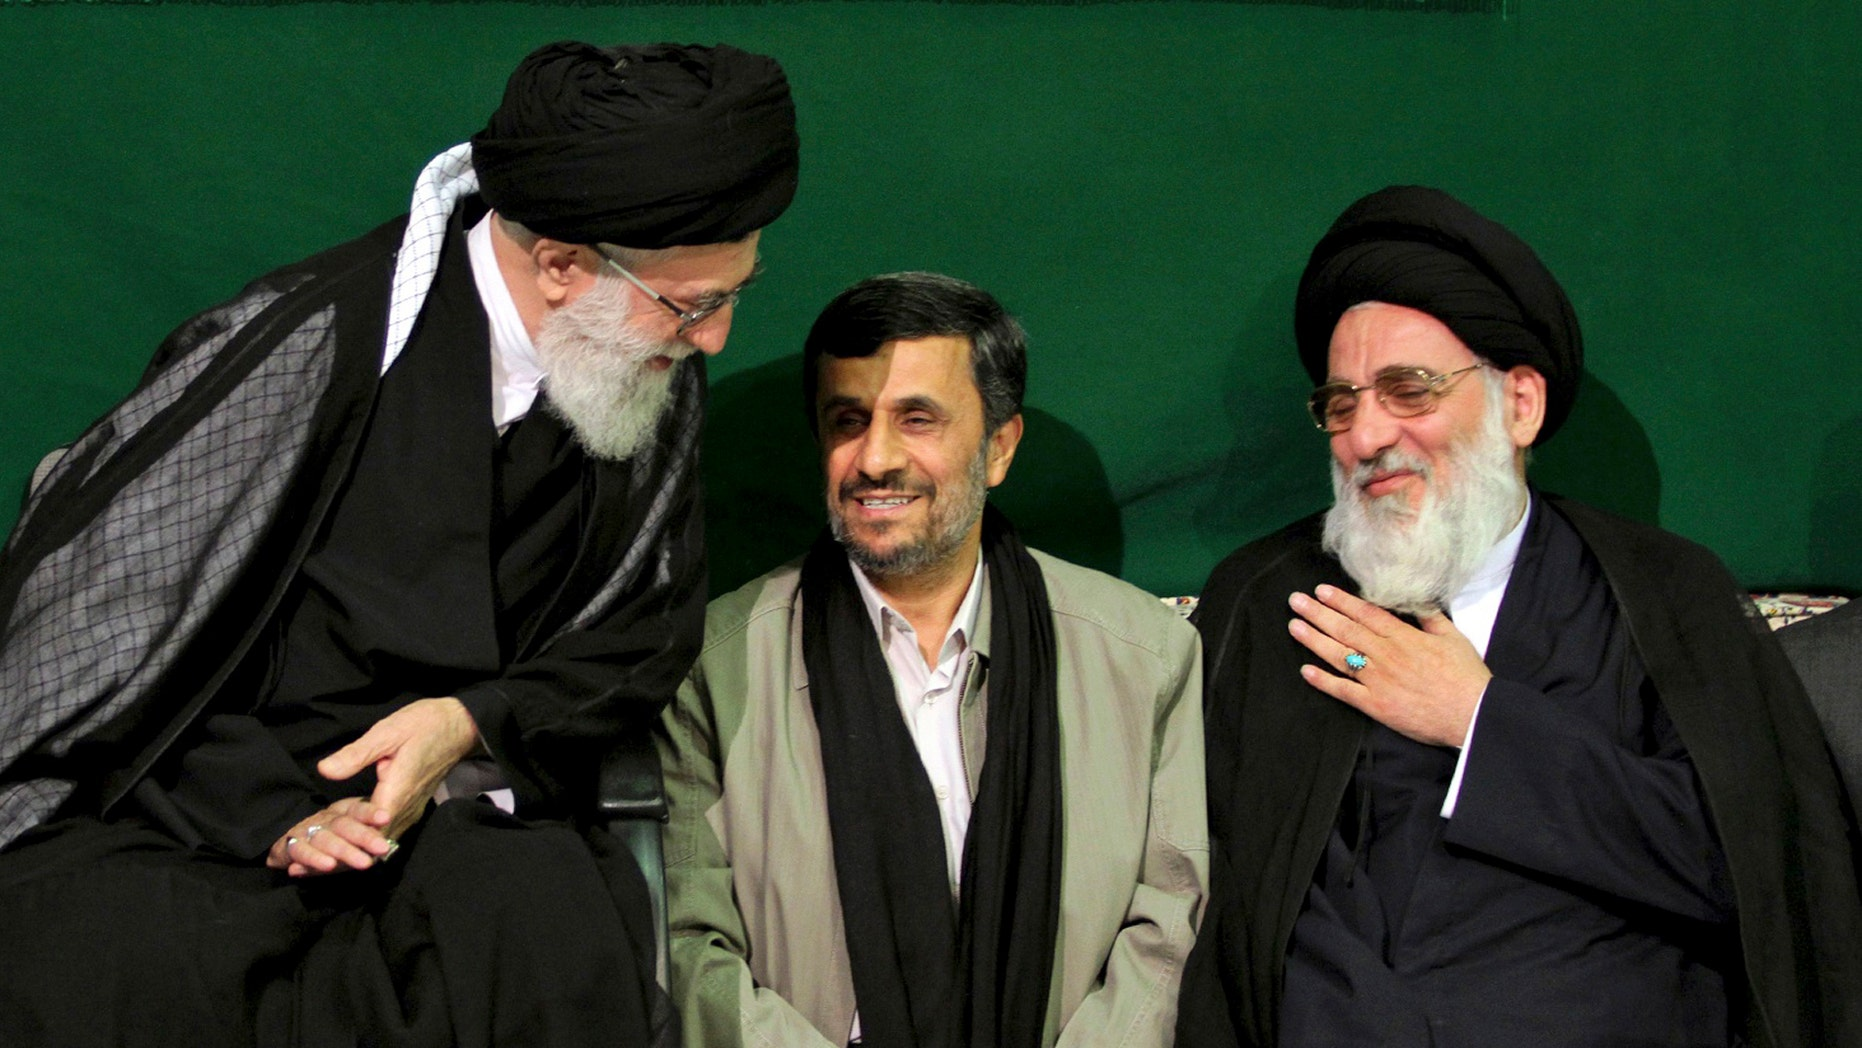 In this Saturday, May 7, 2011 photo released by an official website of the Iranian supreme leader's office, Iranian supreme leader Ayatollah Ali Khamenei, left, greets former Judiciary chief Ayatollah Mahmoud Hashemi Shahroudi, right, as President Mahmoud Ahmadinejad sits at center, during a religious ceremony, in Tehran, Iran. (AP)